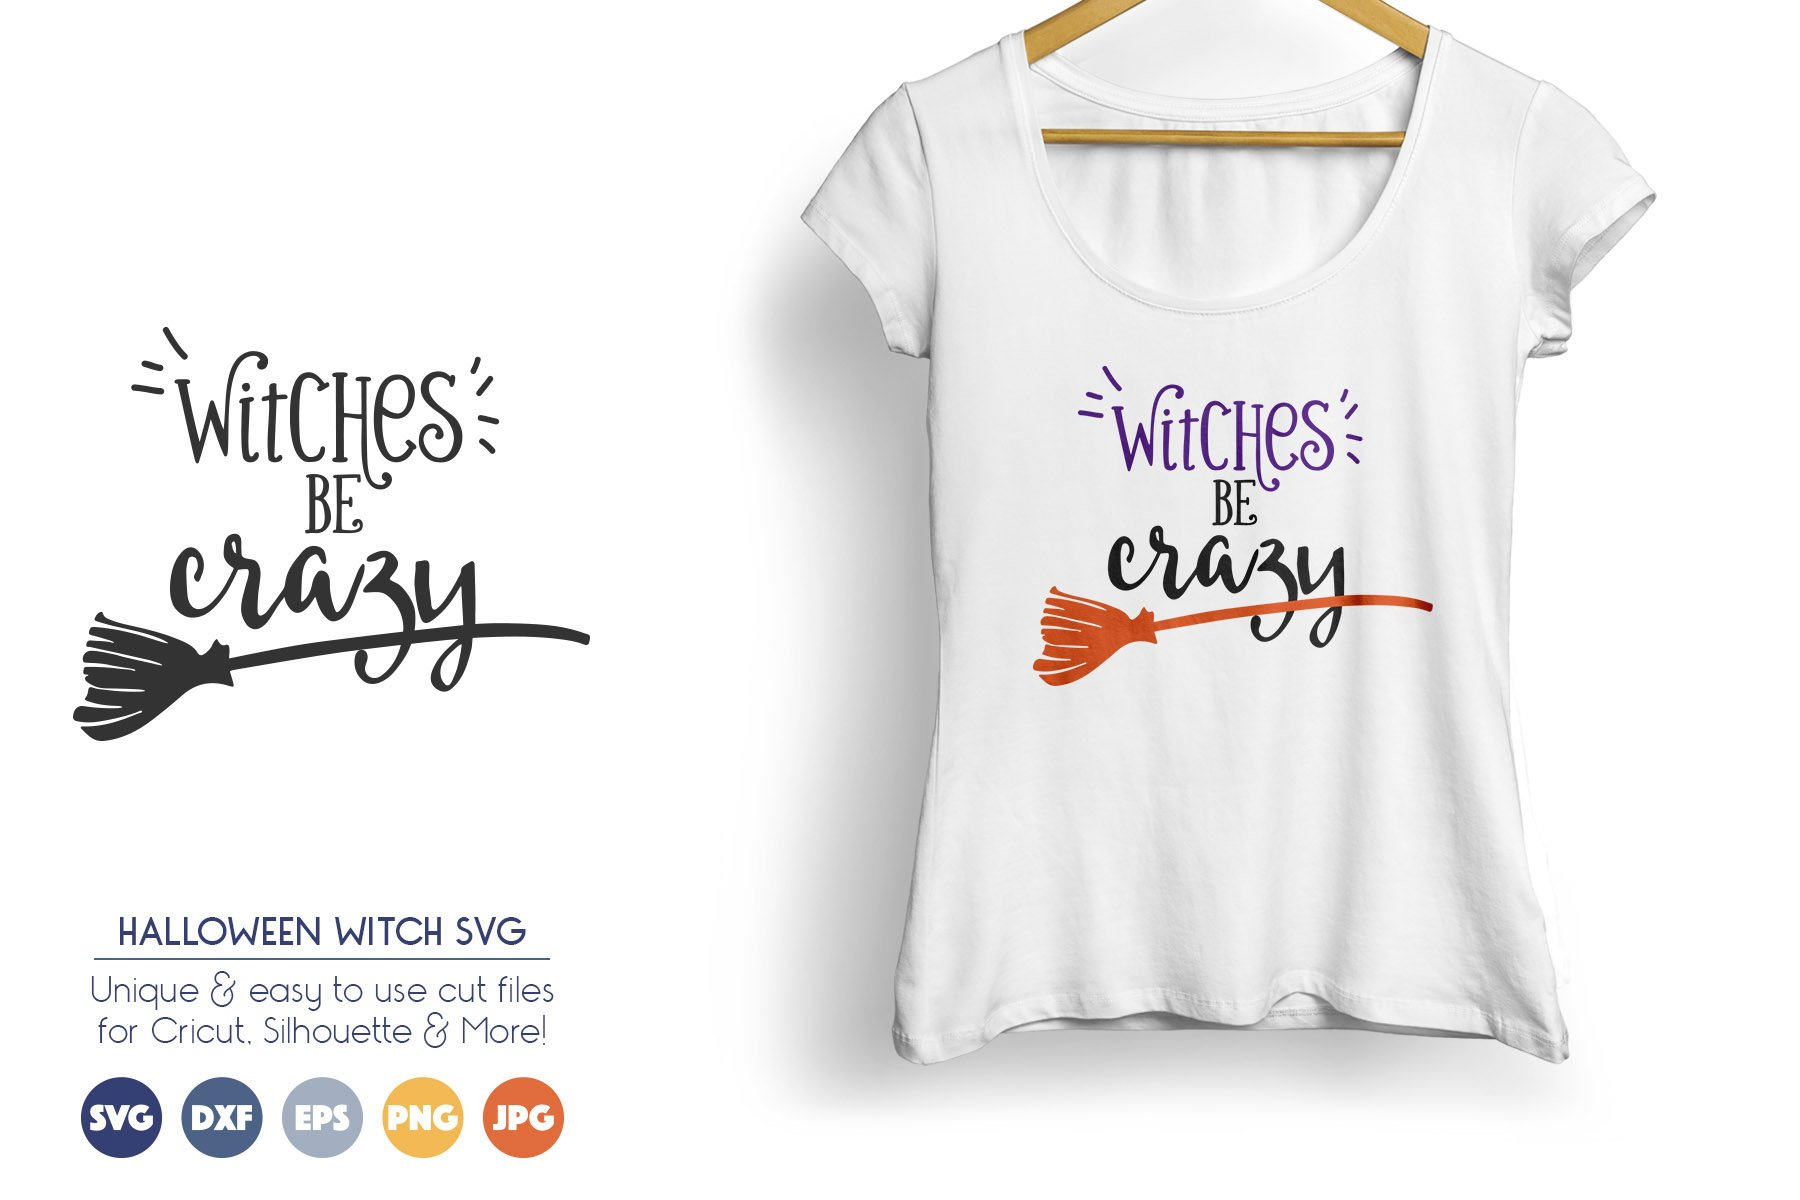 Witches Be Crazy - Halloween SVG Cut Files example image 1